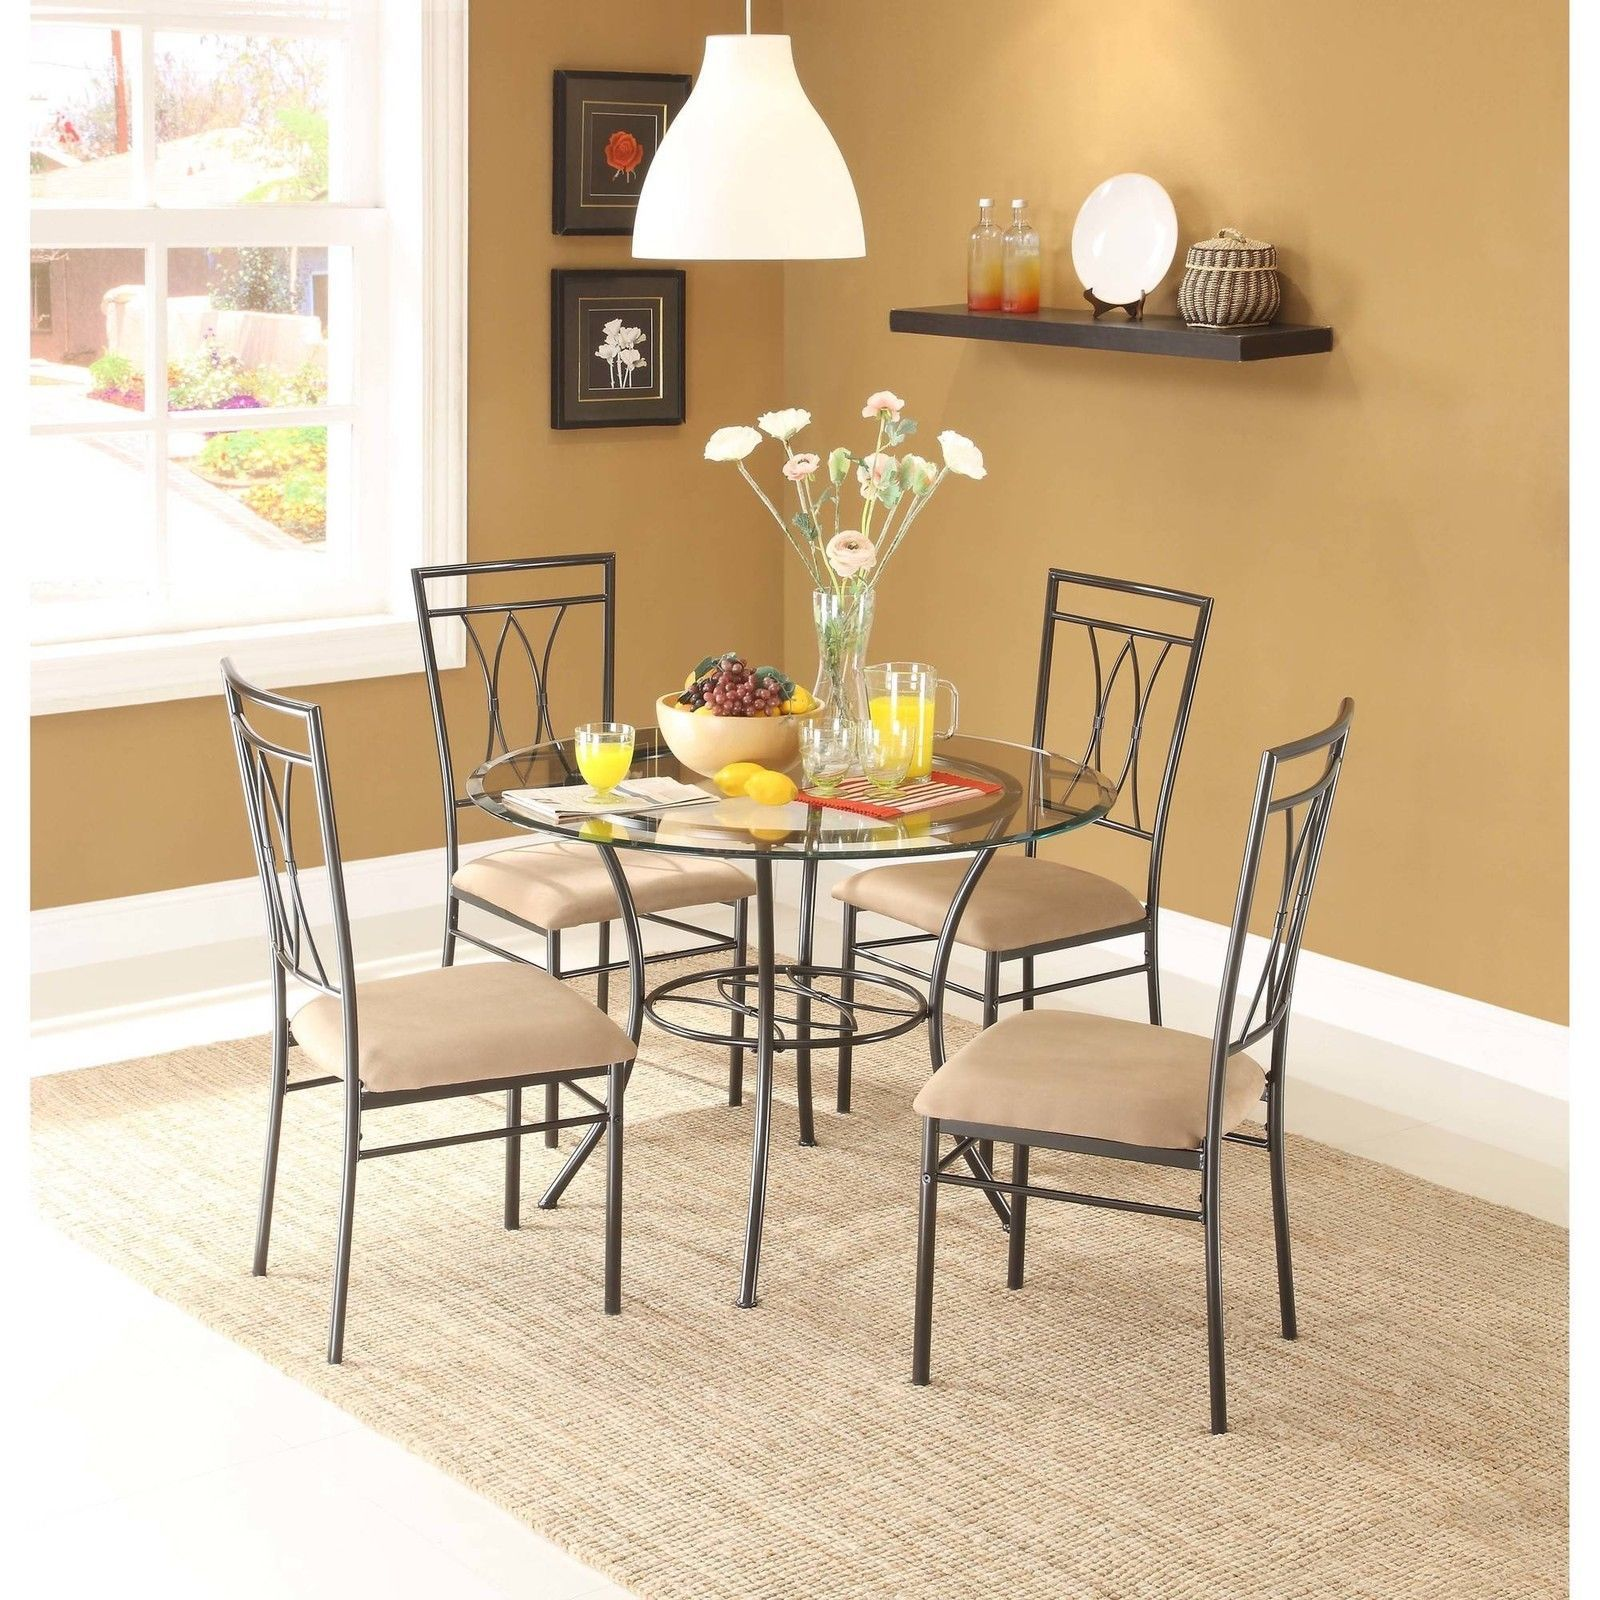 Mainstays piece glass and metal dining set sets